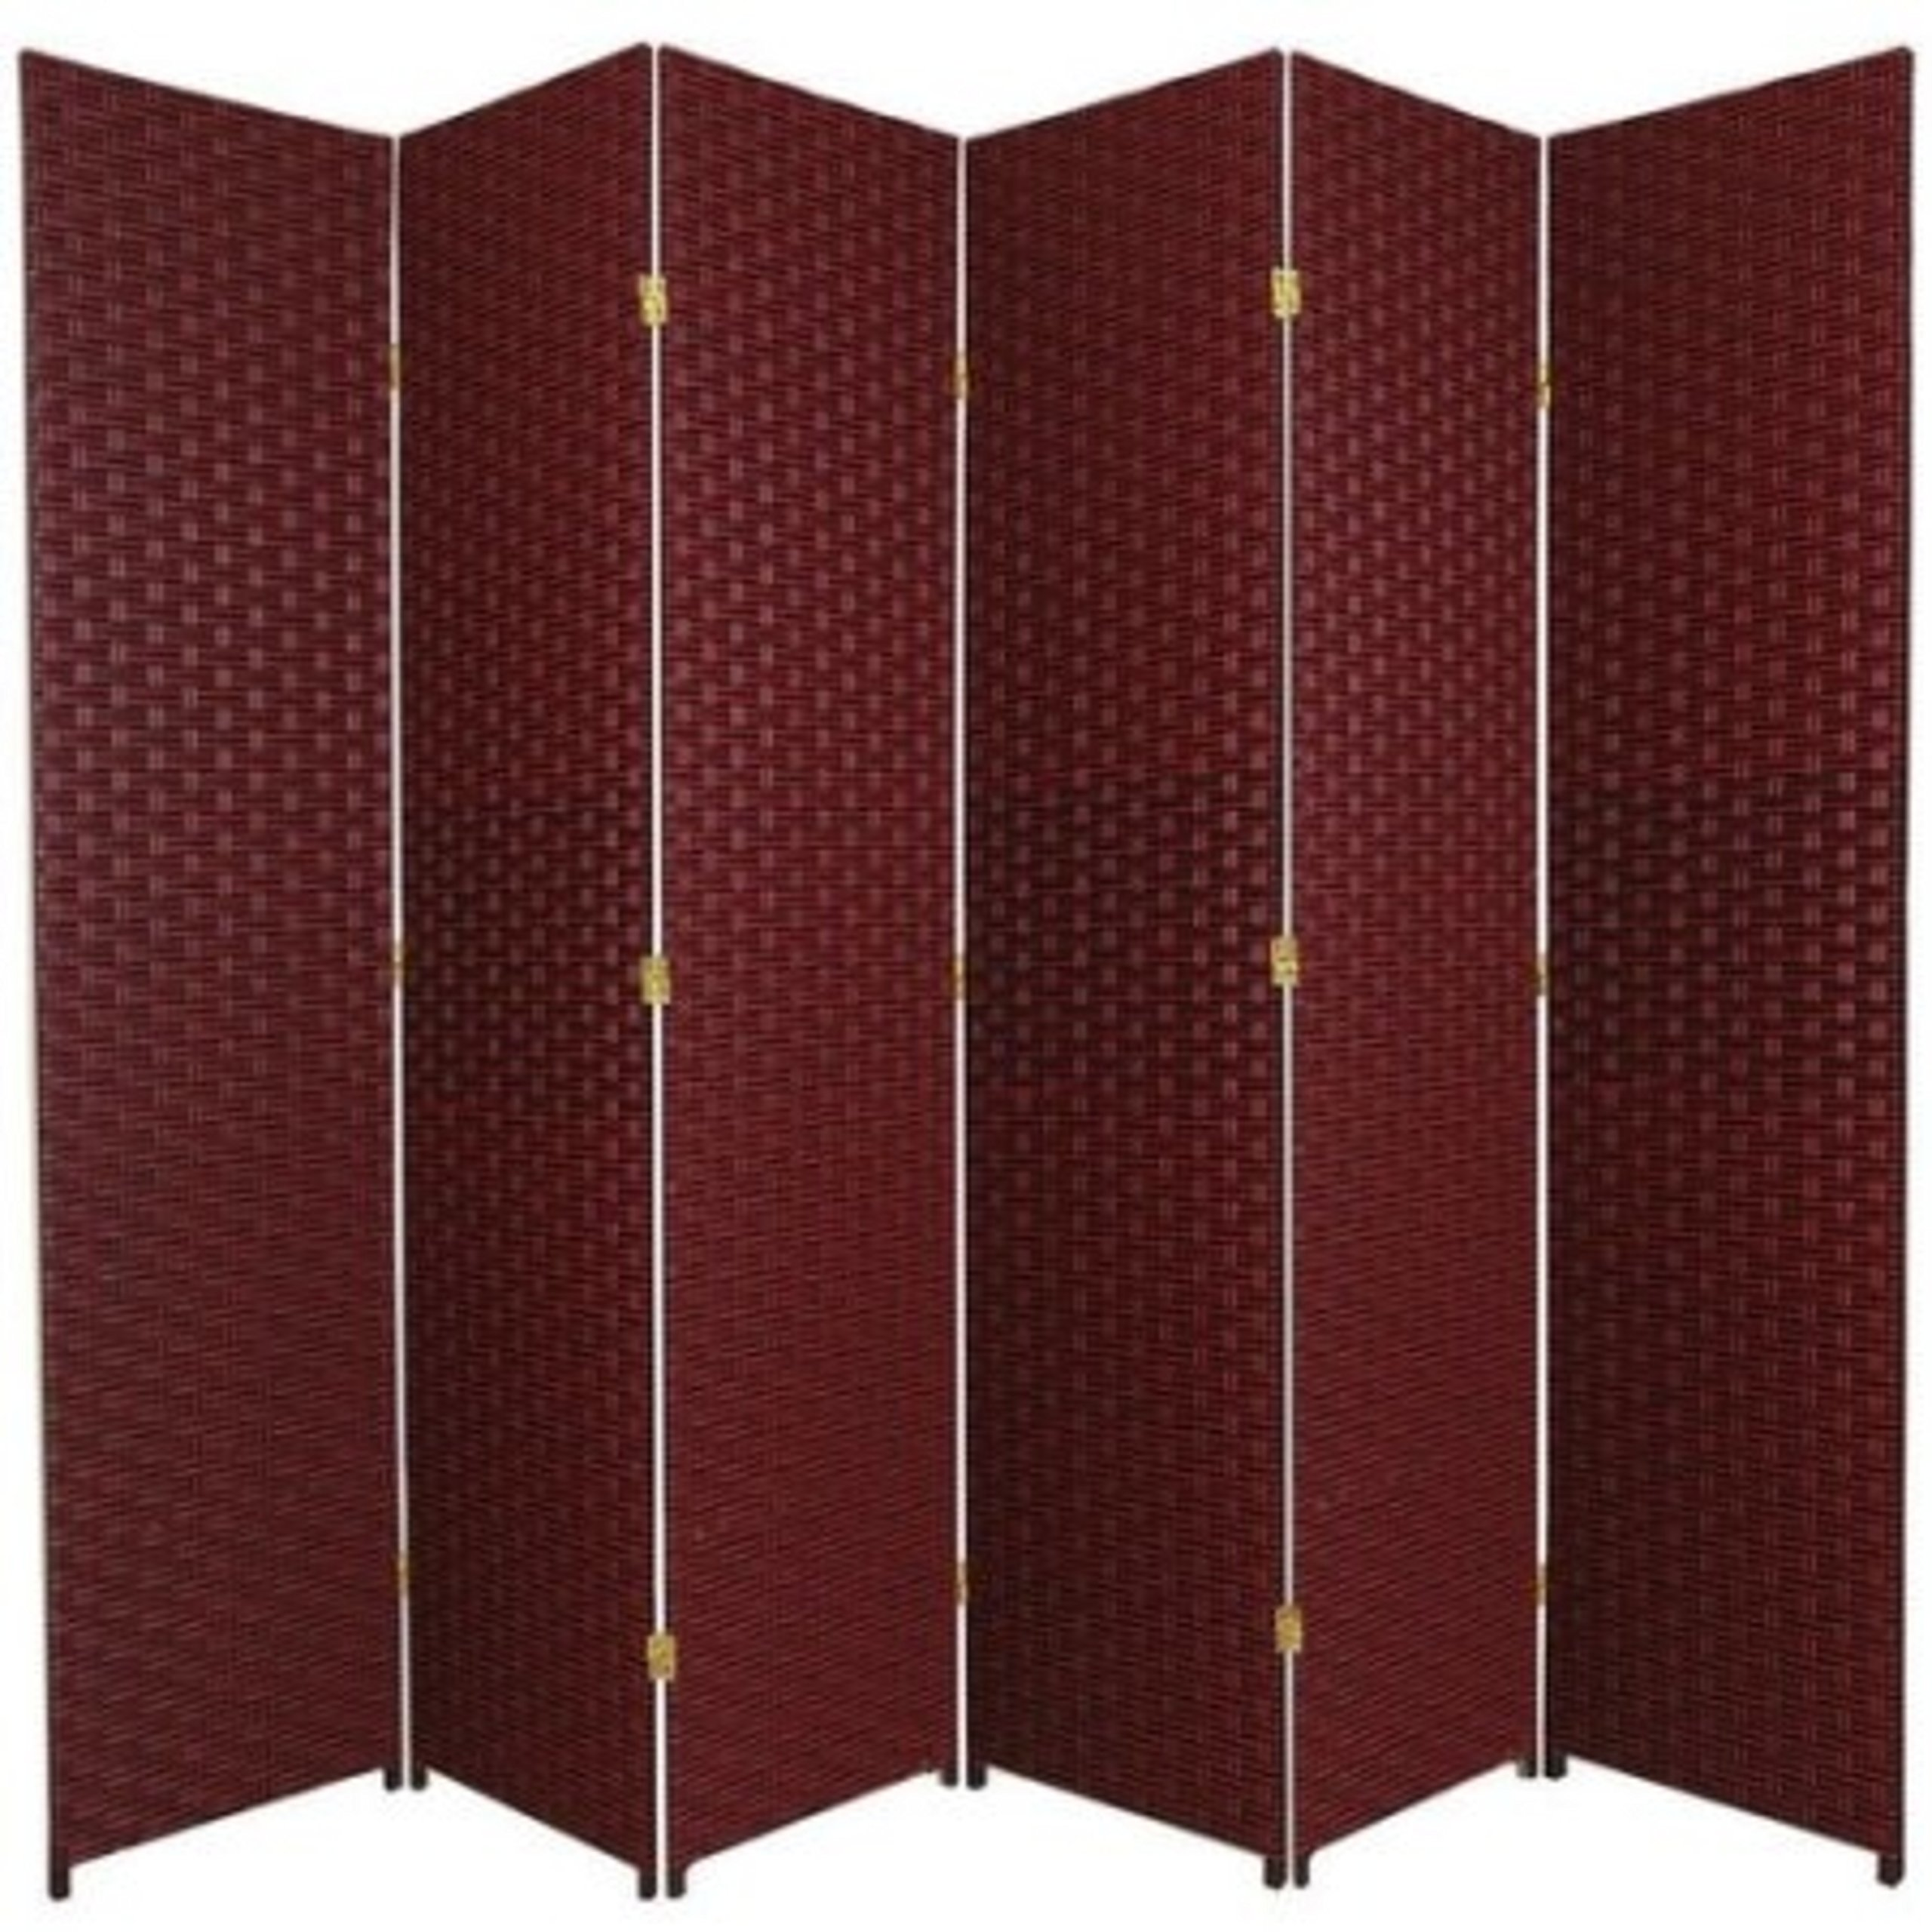 Natural Plant Fiber Woven Room Decor Red 6 Panels Divider by Roman Shade Unlimited